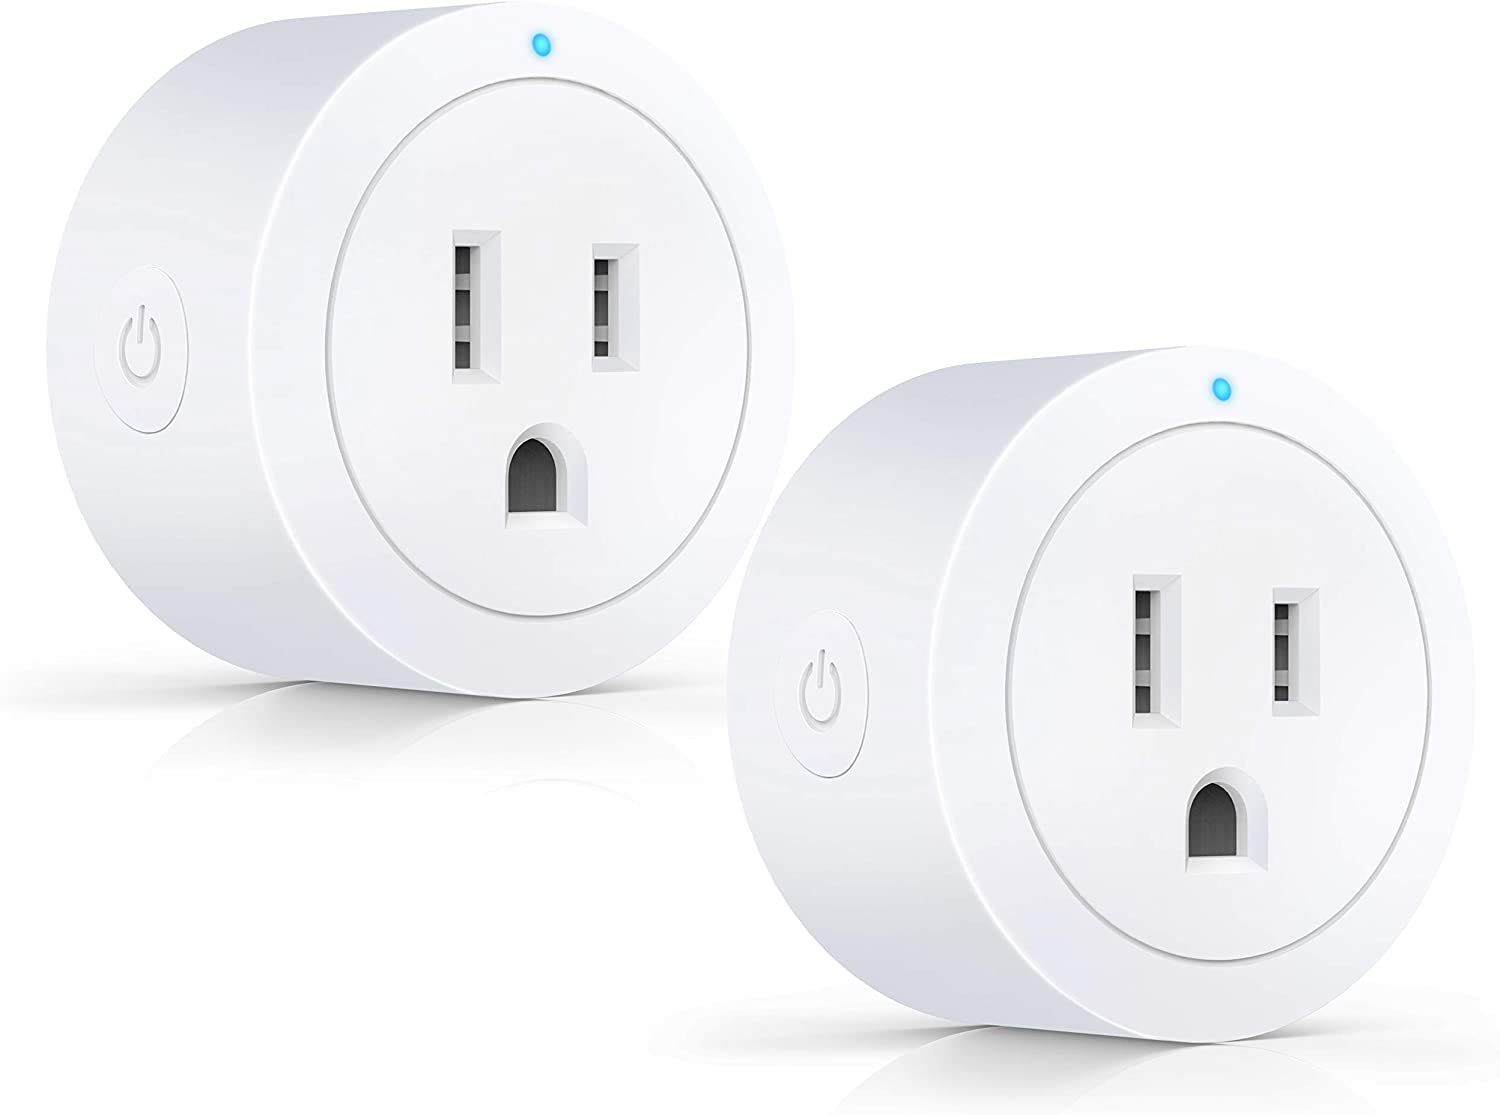 Smart plug ESICOO, Compatible with Alexa, Google Assistant & IFTTT, ETL Certified, Only Supports 2.4GHz Network, Smart Outlet No Hub Required, Control Your Devices from Anywhere